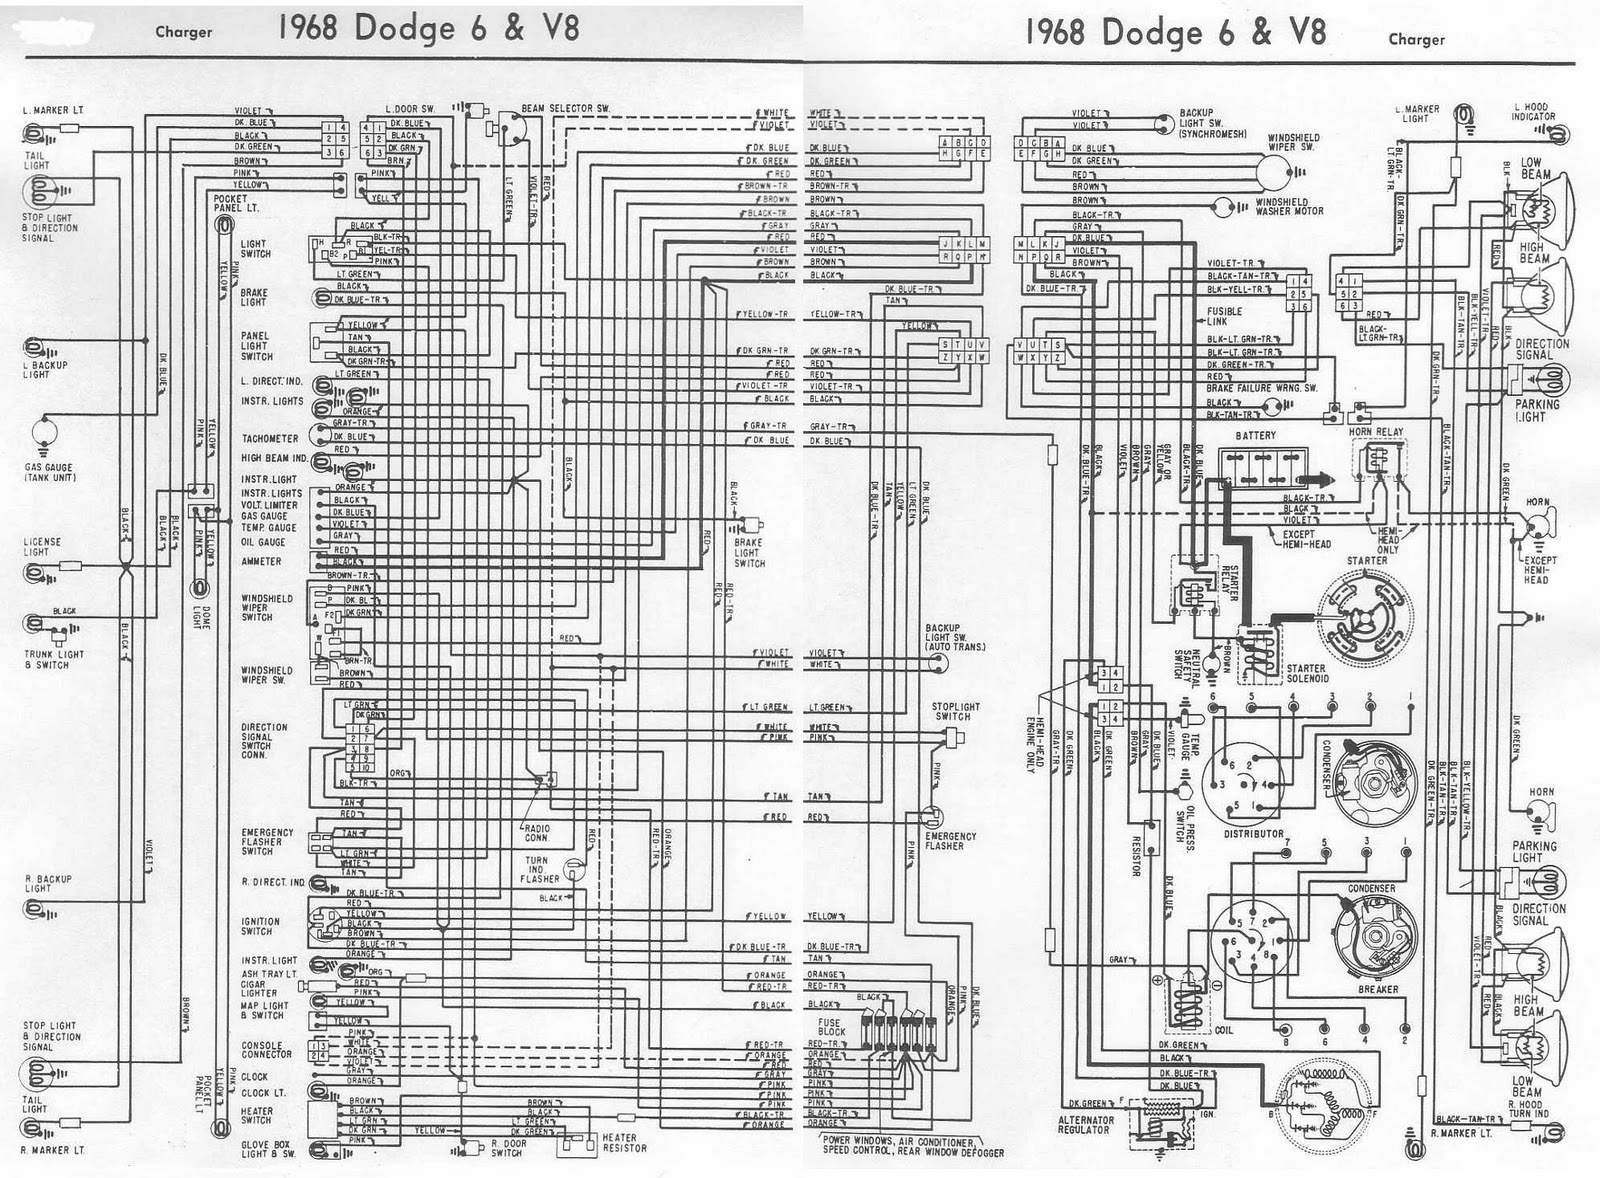 DIAGRAM] 1968 Dodge Charger Wiring Diagram 6 FULL Version HD Quality Diagram  6 - LONNDIAGRAM.STUDIO-14.ITstudio-14.it